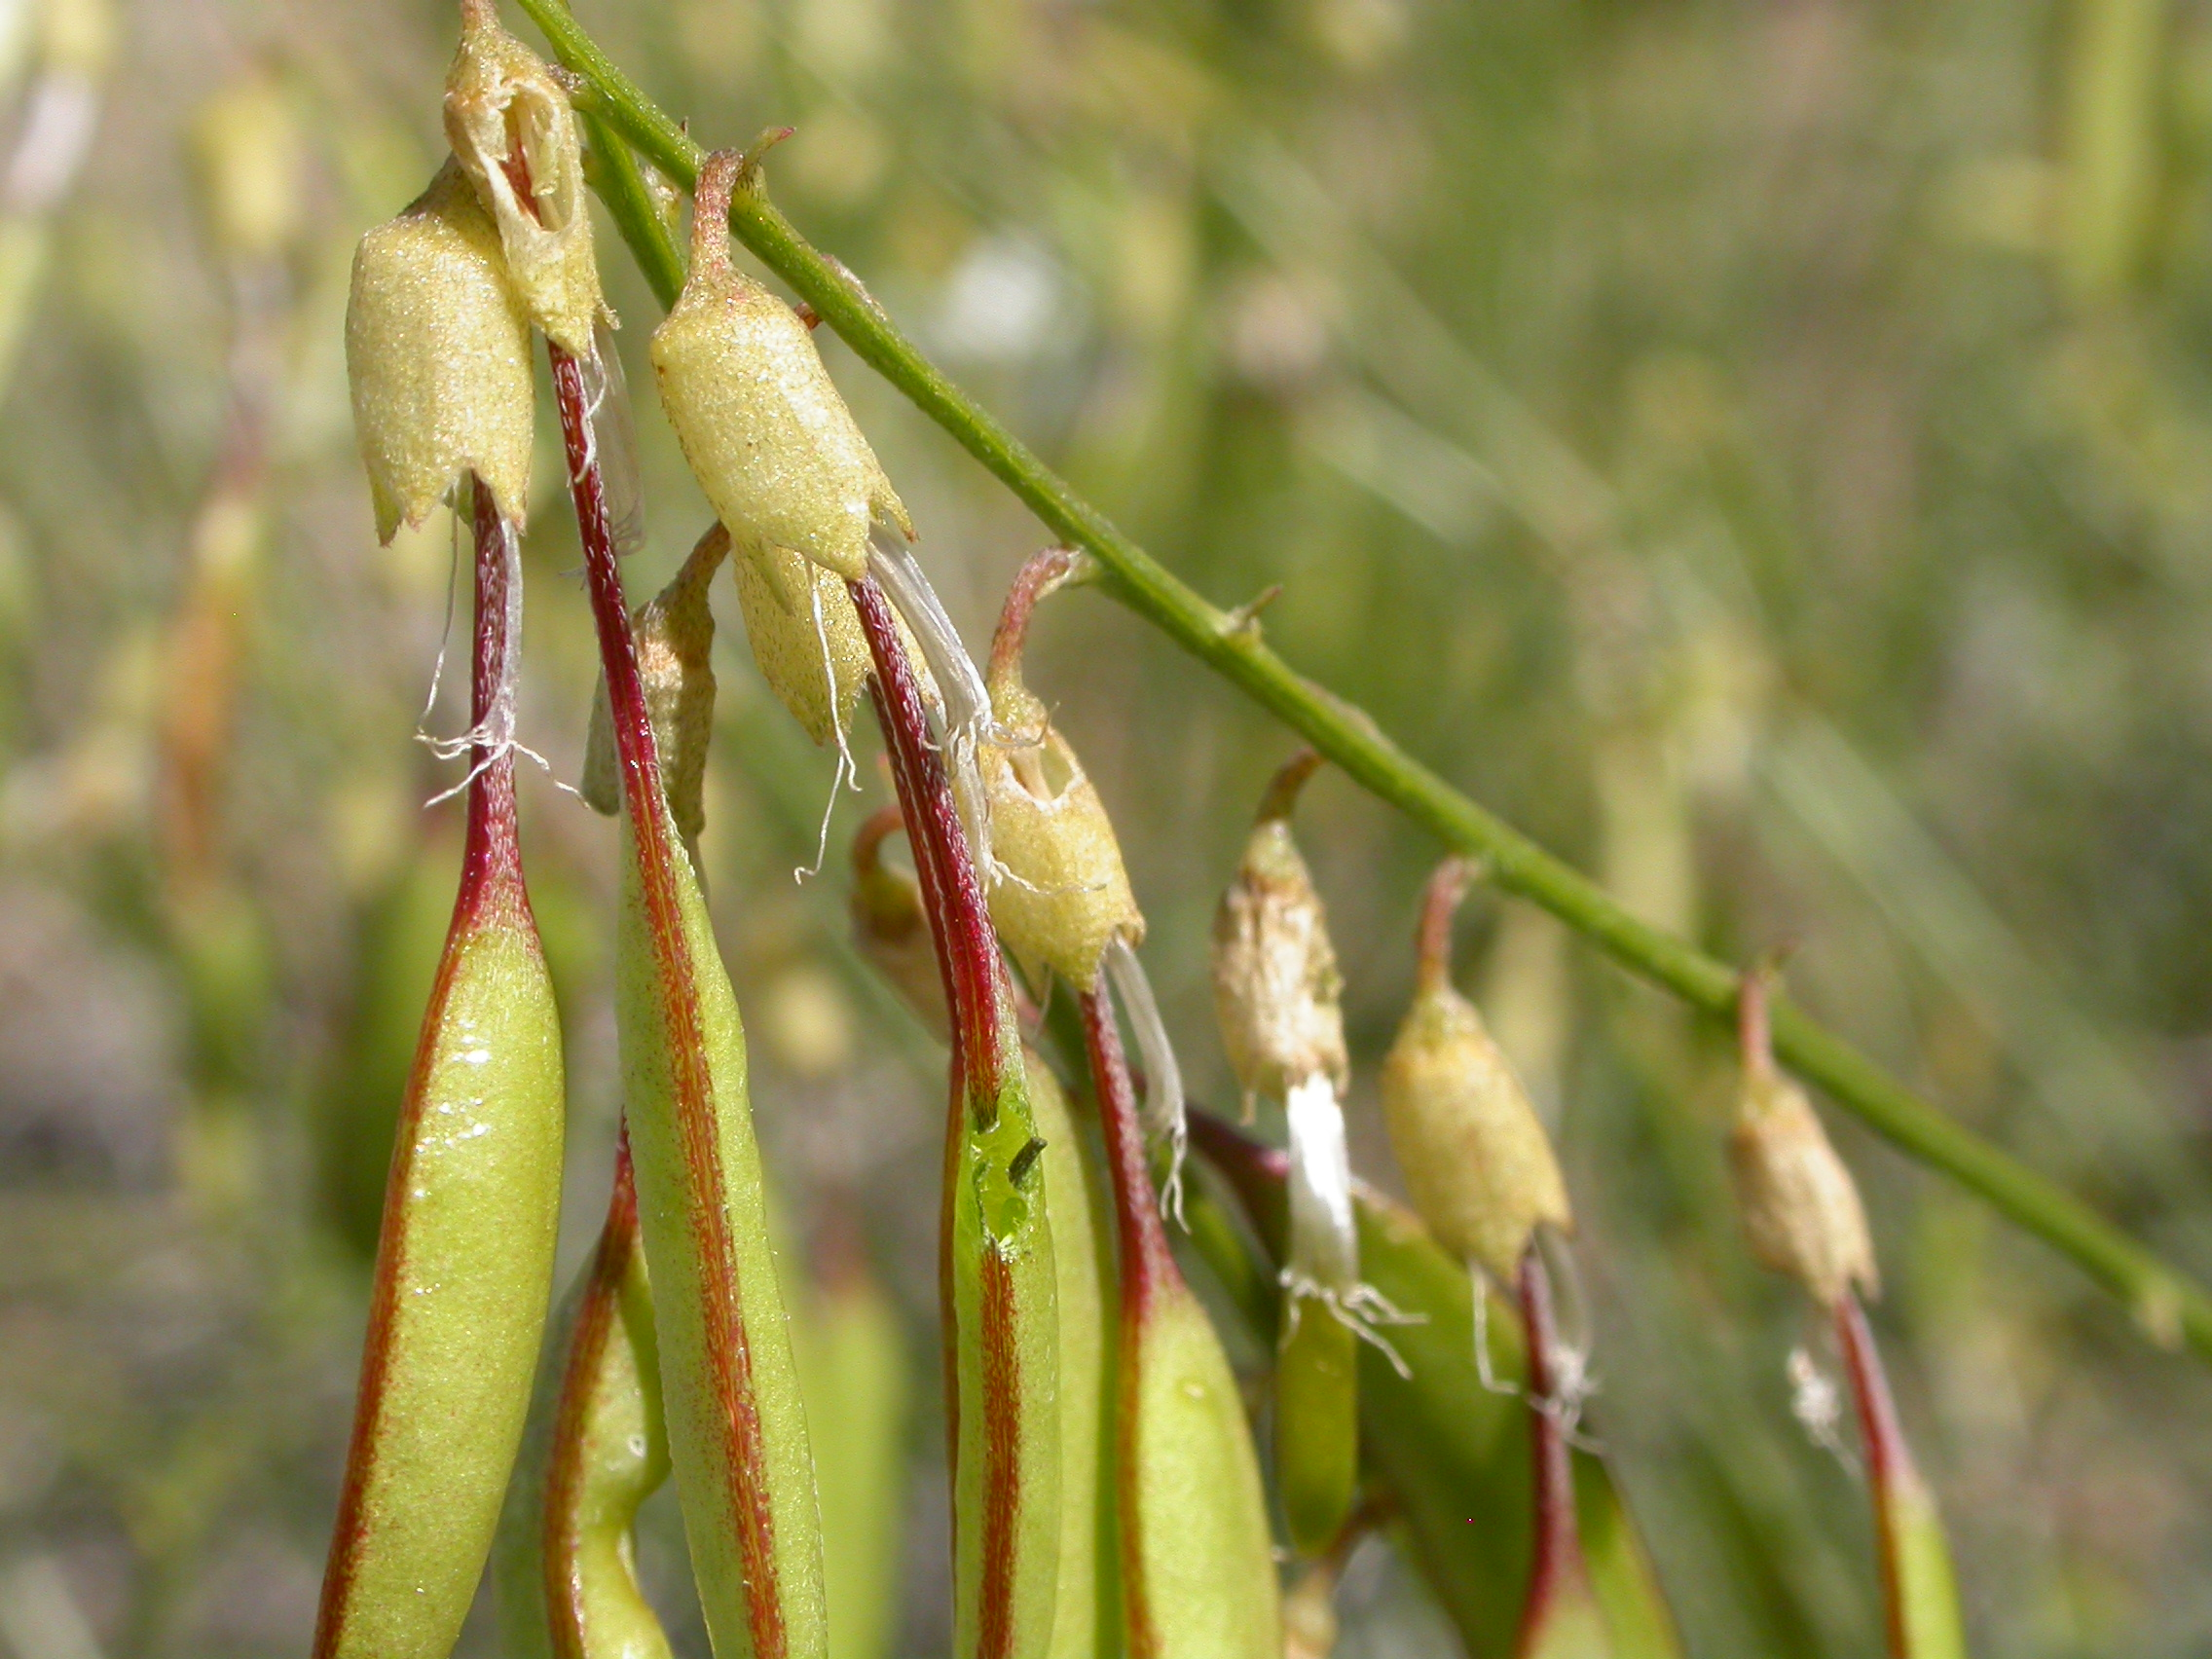 By Matt Lavin from Bozeman, Montana, USA (Astragalus filipes Uploaded by Jacopo Werther) [CC BY-SA 2.0 (http://creativecommons.org/licenses/by-sa/2.0)], via Wikimedia Commons